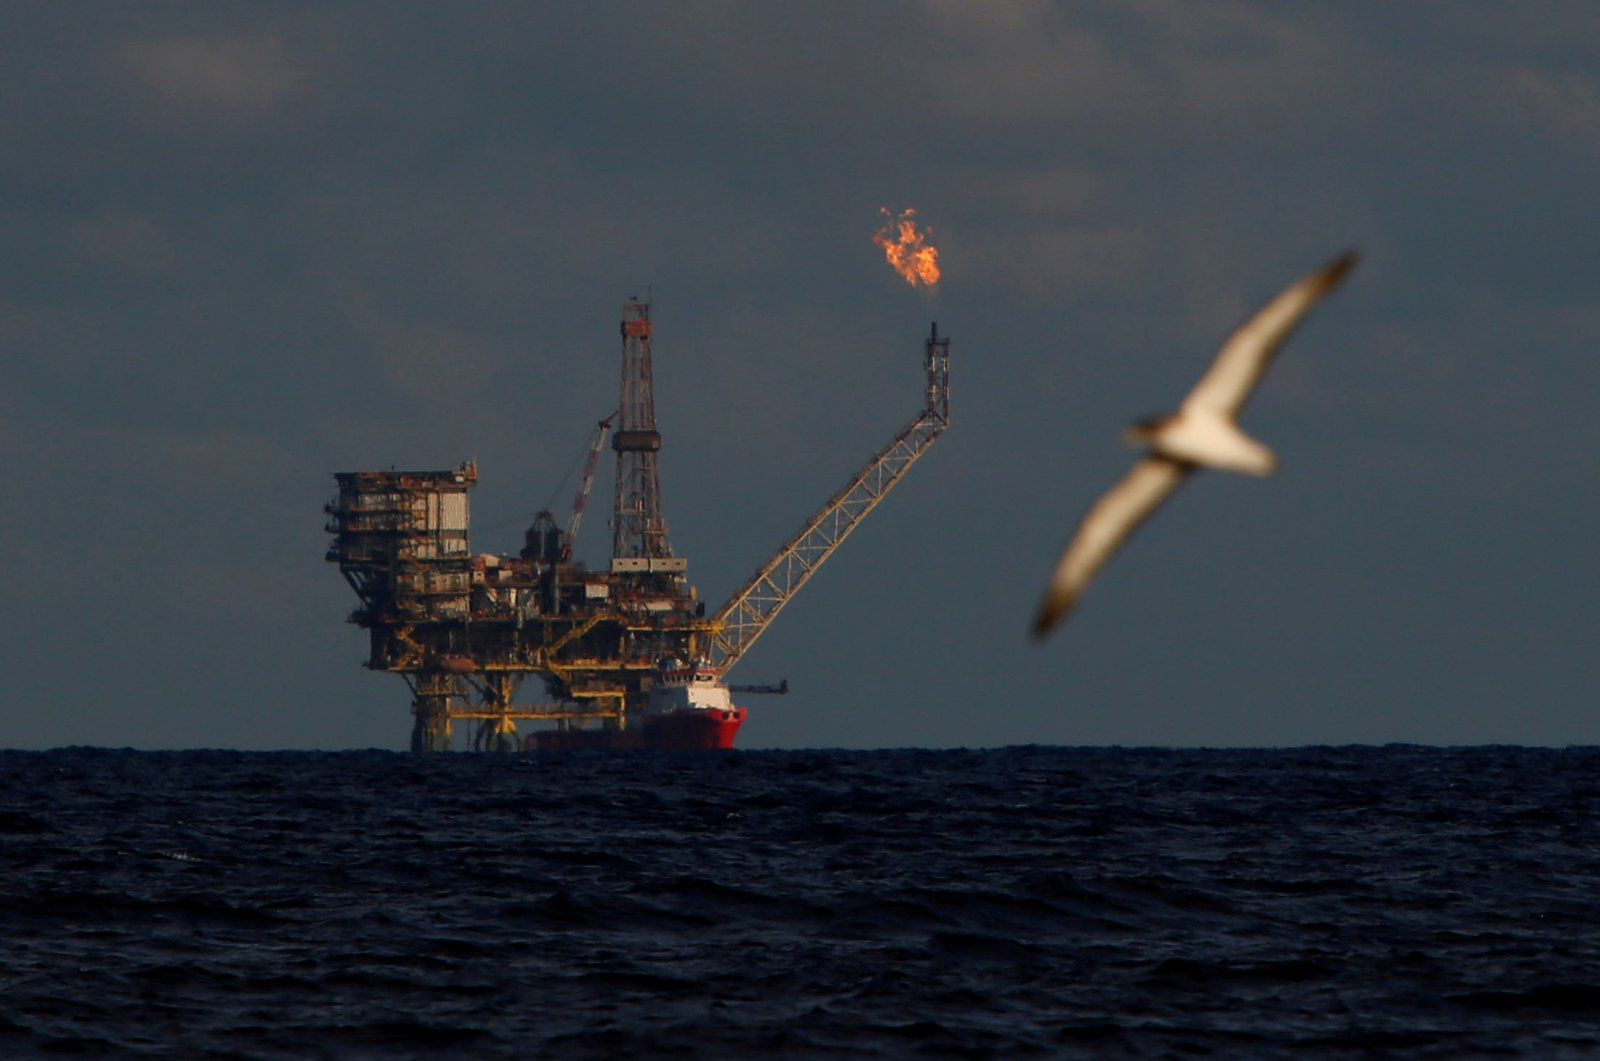 A seagull flies in front of an oil platform in the Bouri Oilfield some 70 nautical miles north of the coast of Libya, October 5, 2017. ( REUTERS Photo)